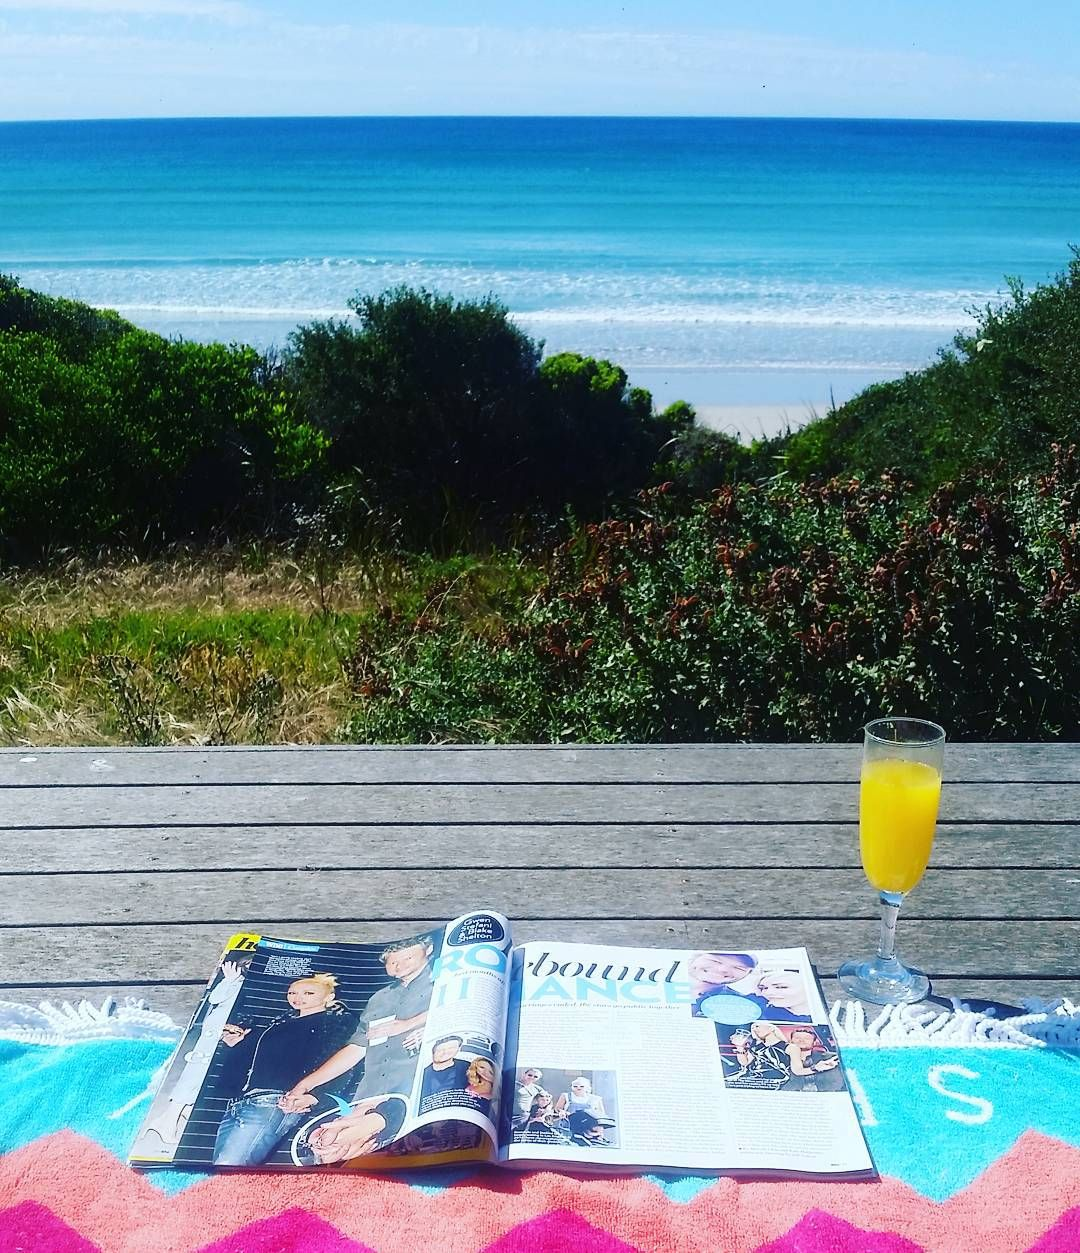 Quick recharge in #portfairy and we are back on the road again. #familymoon by lydieloves http://ift.tt/1UokfWI